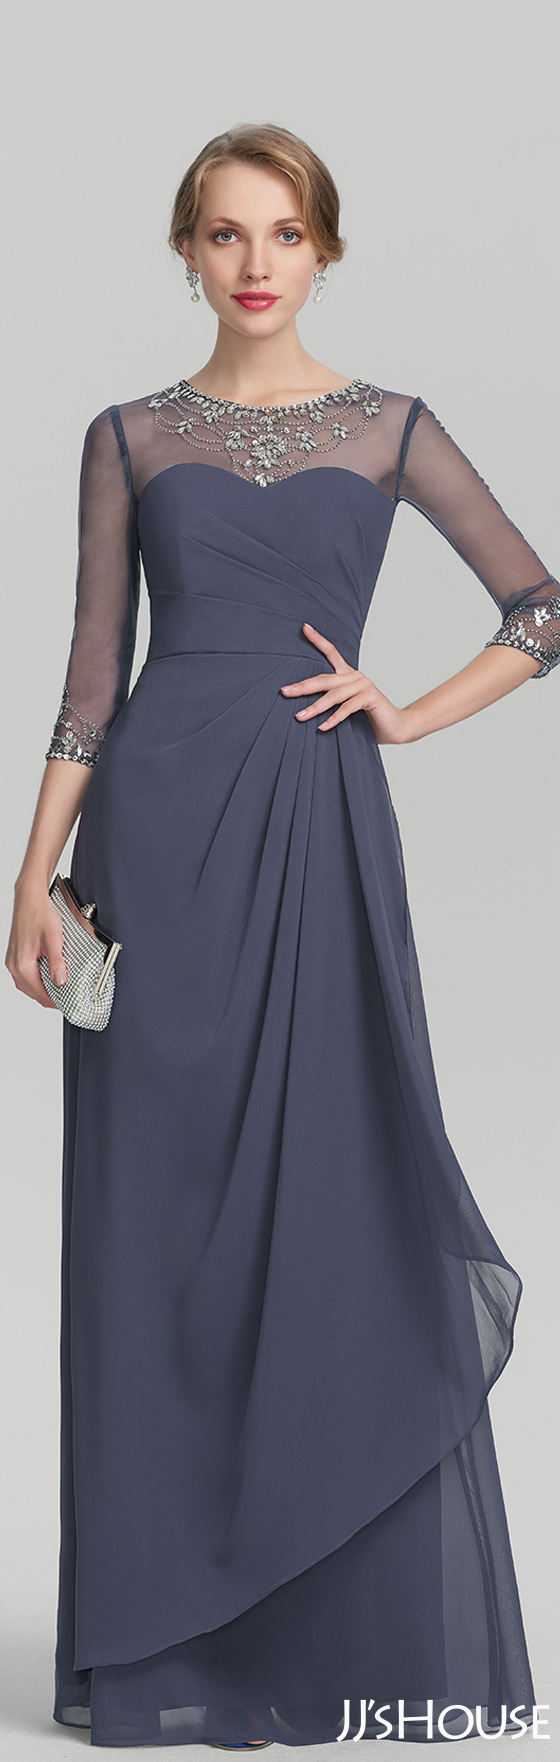 A-Line/Princess Scoop Neck Floor-Length Chiffon Mother of the Bride ...